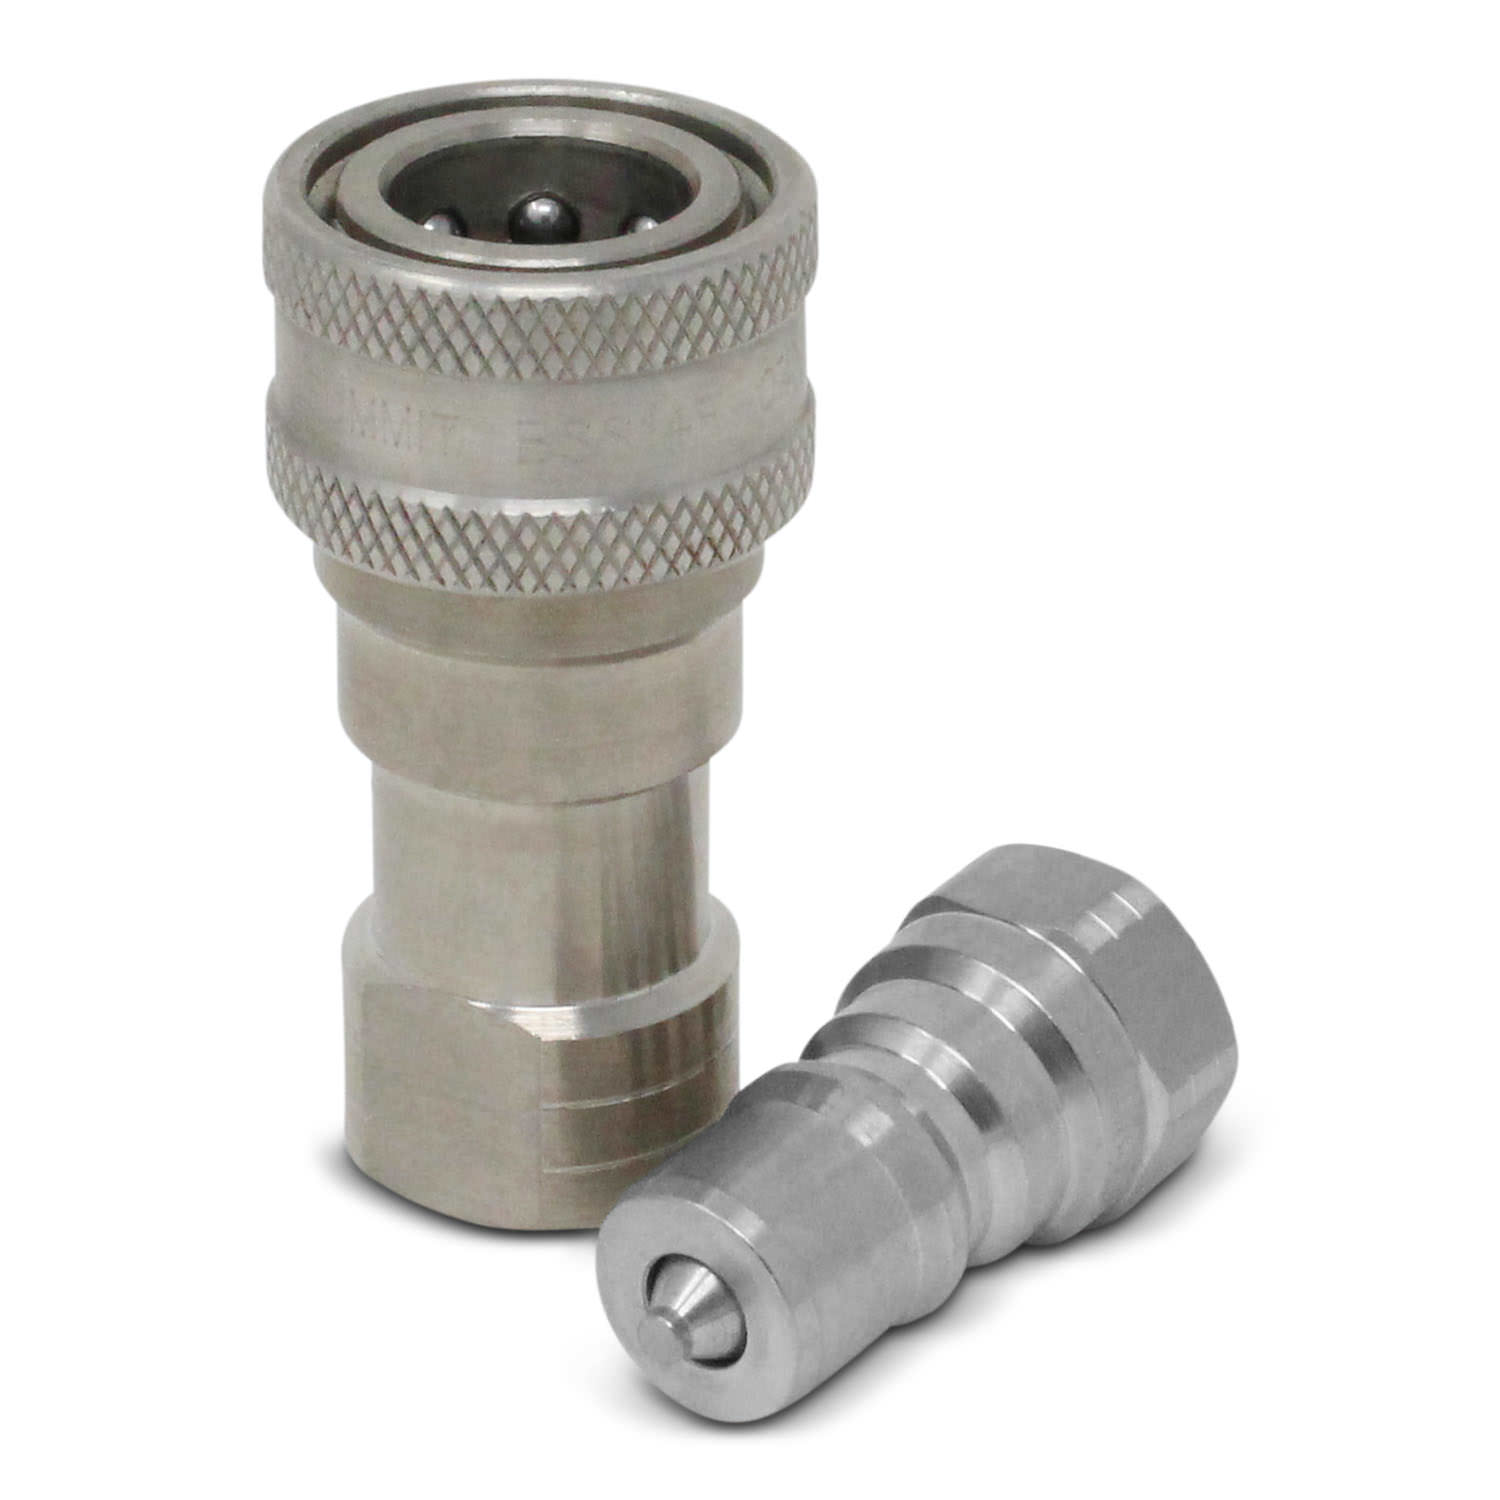 Stainless Steel Coupler : Quot npt iso b stainless steel quick disconnect